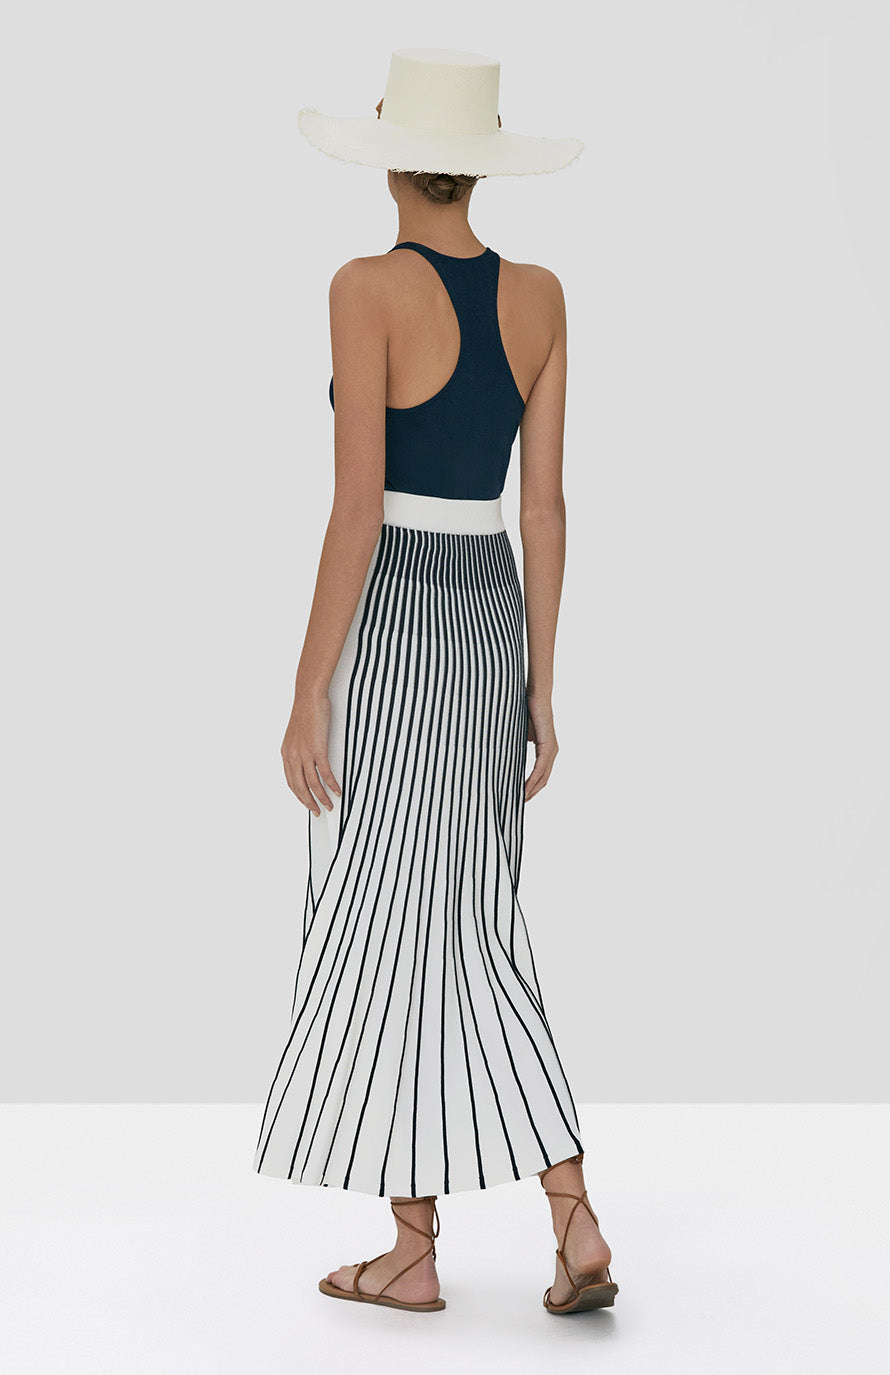 Alexis Zeni Top in Navy and Vani Skirt in Navy/White Stripes from Spring Summer 2020 Collection - Rear View